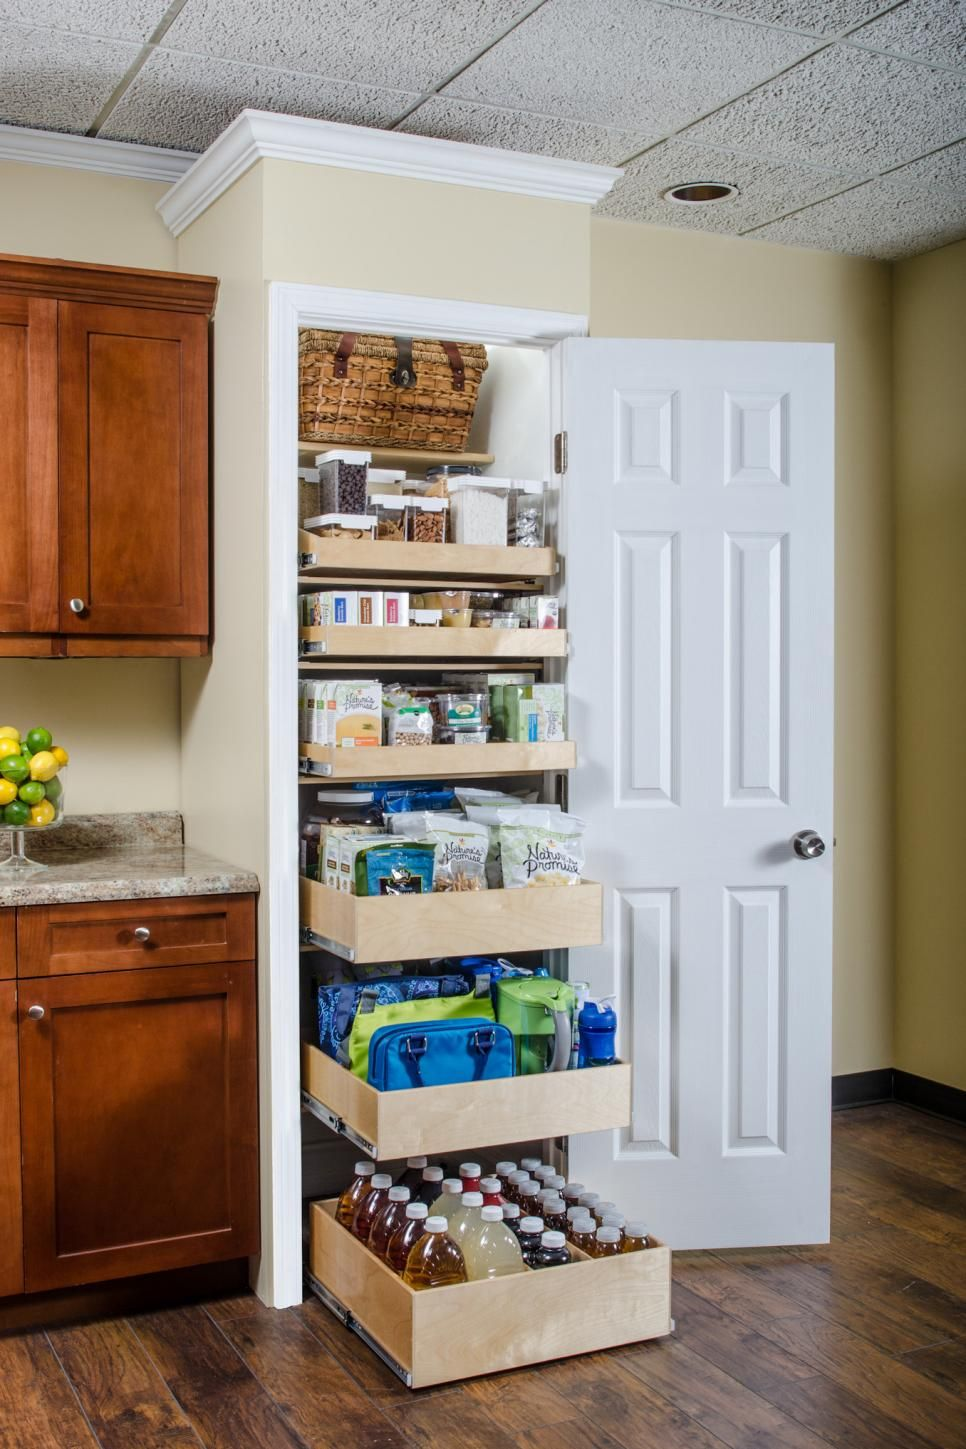 20 Best Pantry Organizers | For the Home | Pinterest ...